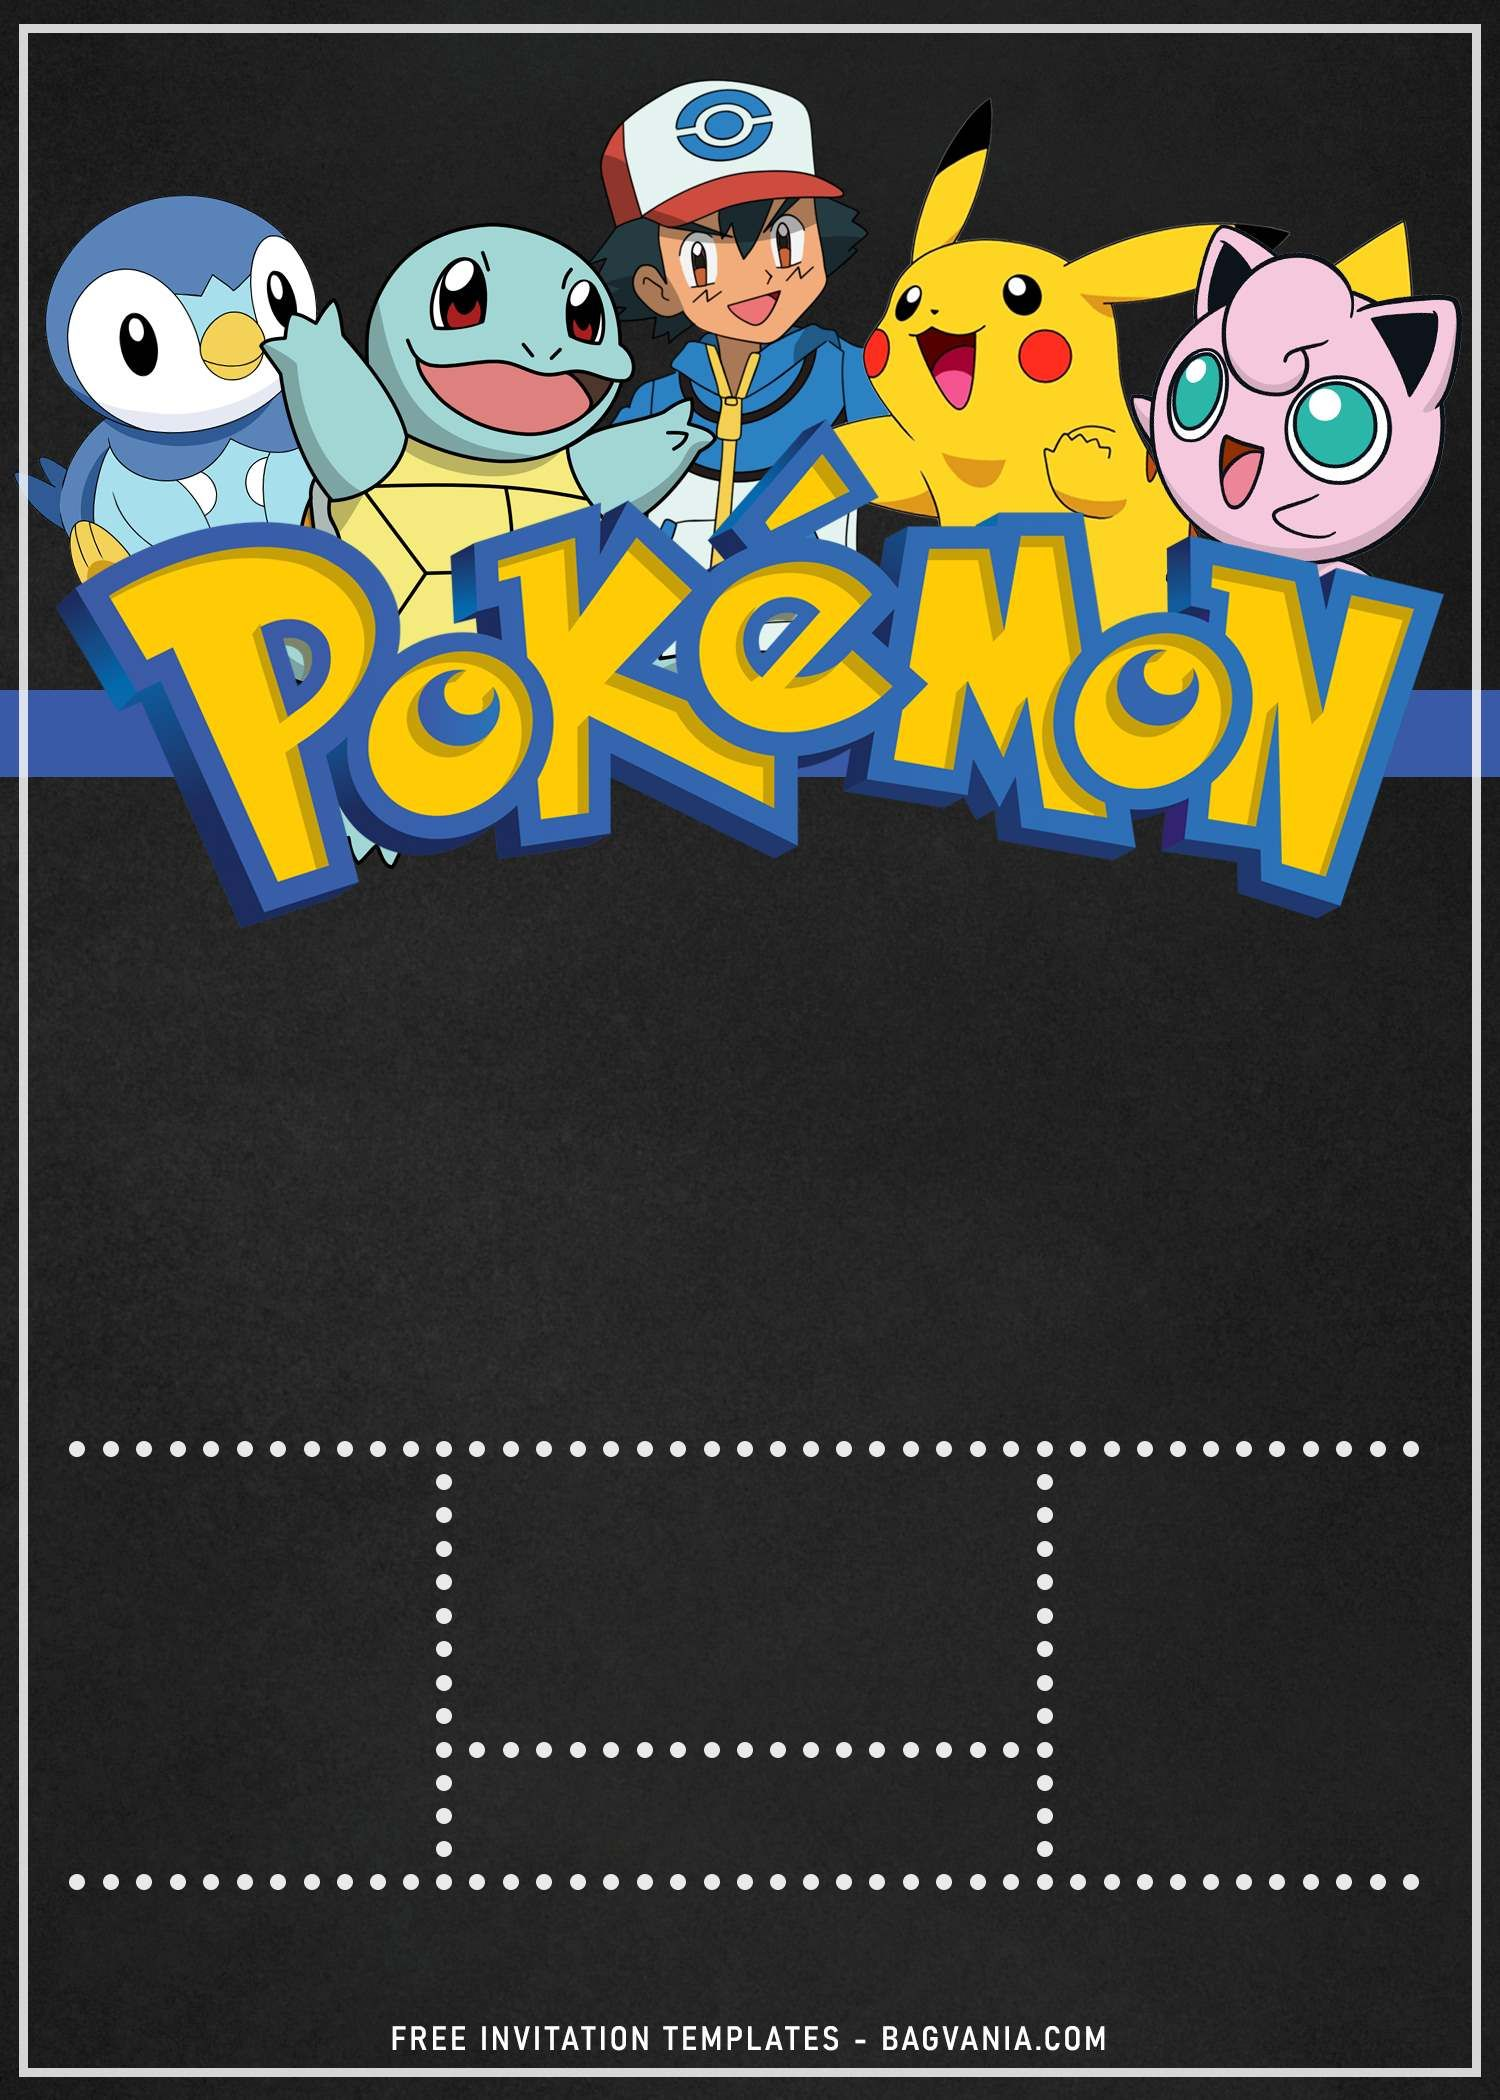 11 Awesome Pokemon Chalkboard Invitation Templates For Boys Birthday Party In 2021 Pokemon Party Invitations Pokemon Birthday Invites Pokemon Invitations